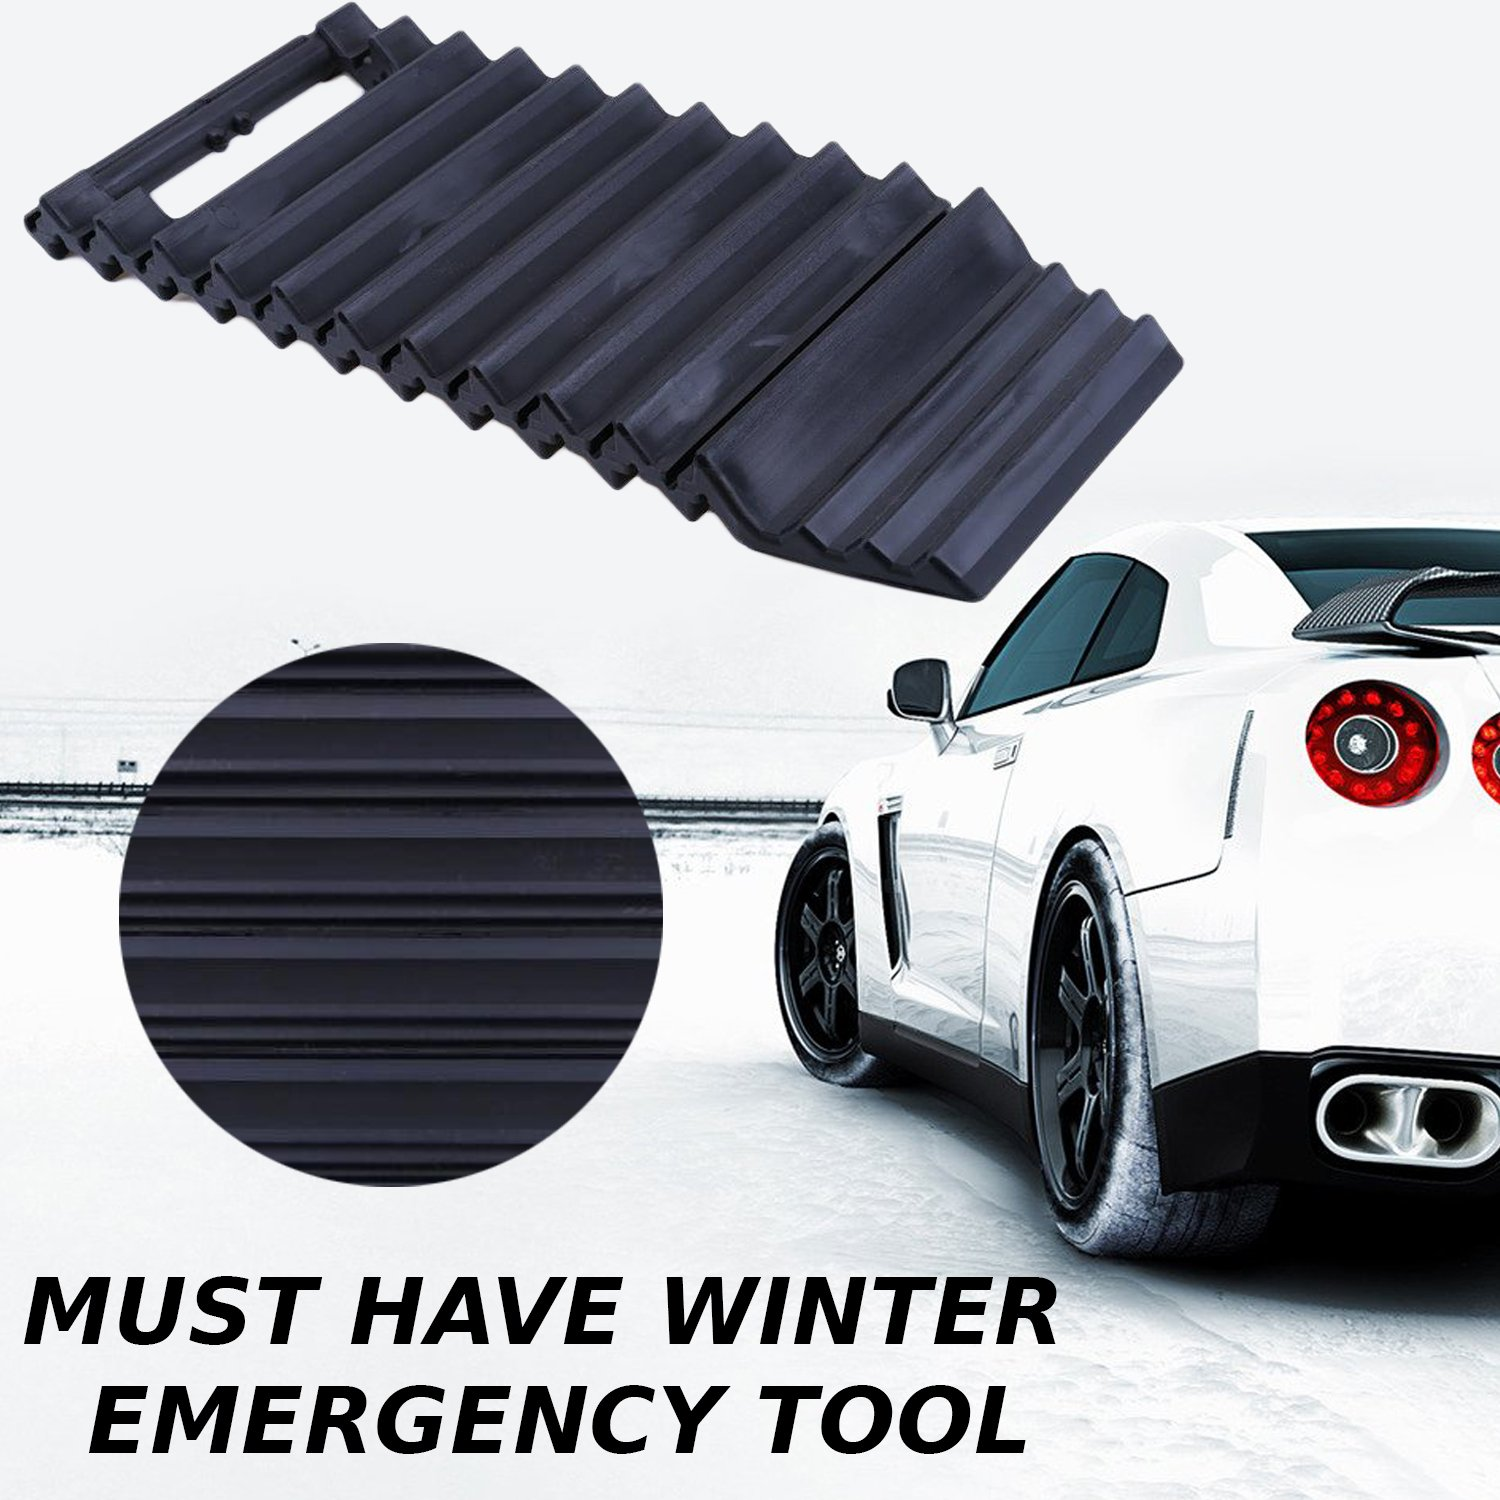 Snow Ice Scraper Removal Clean Tool Auto Car Vehicle Glass Snow Shovel Water Scraping Car Windshield Anti Slip Ice Remove Tools Structural Disabilities Spade & Shovel Garden Hand Tools